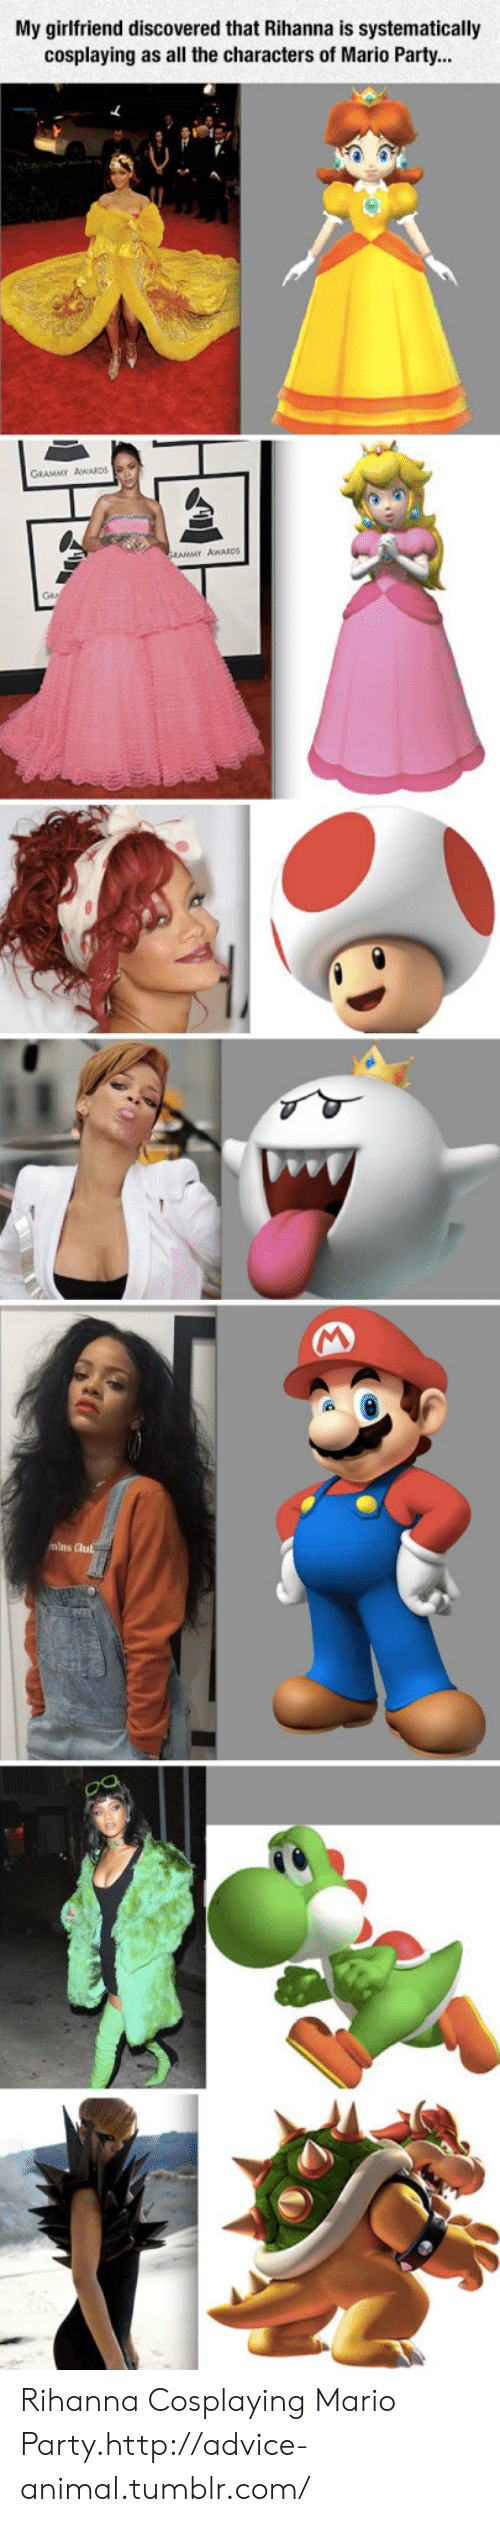 mario party: My girlfriend discovered that Rihanna is systematically  cosplaying as all the characters of Mario Party...  GRAMMY AWARDS  mins Clut Rihanna Cosplaying Mario Party.http://advice-animal.tumblr.com/